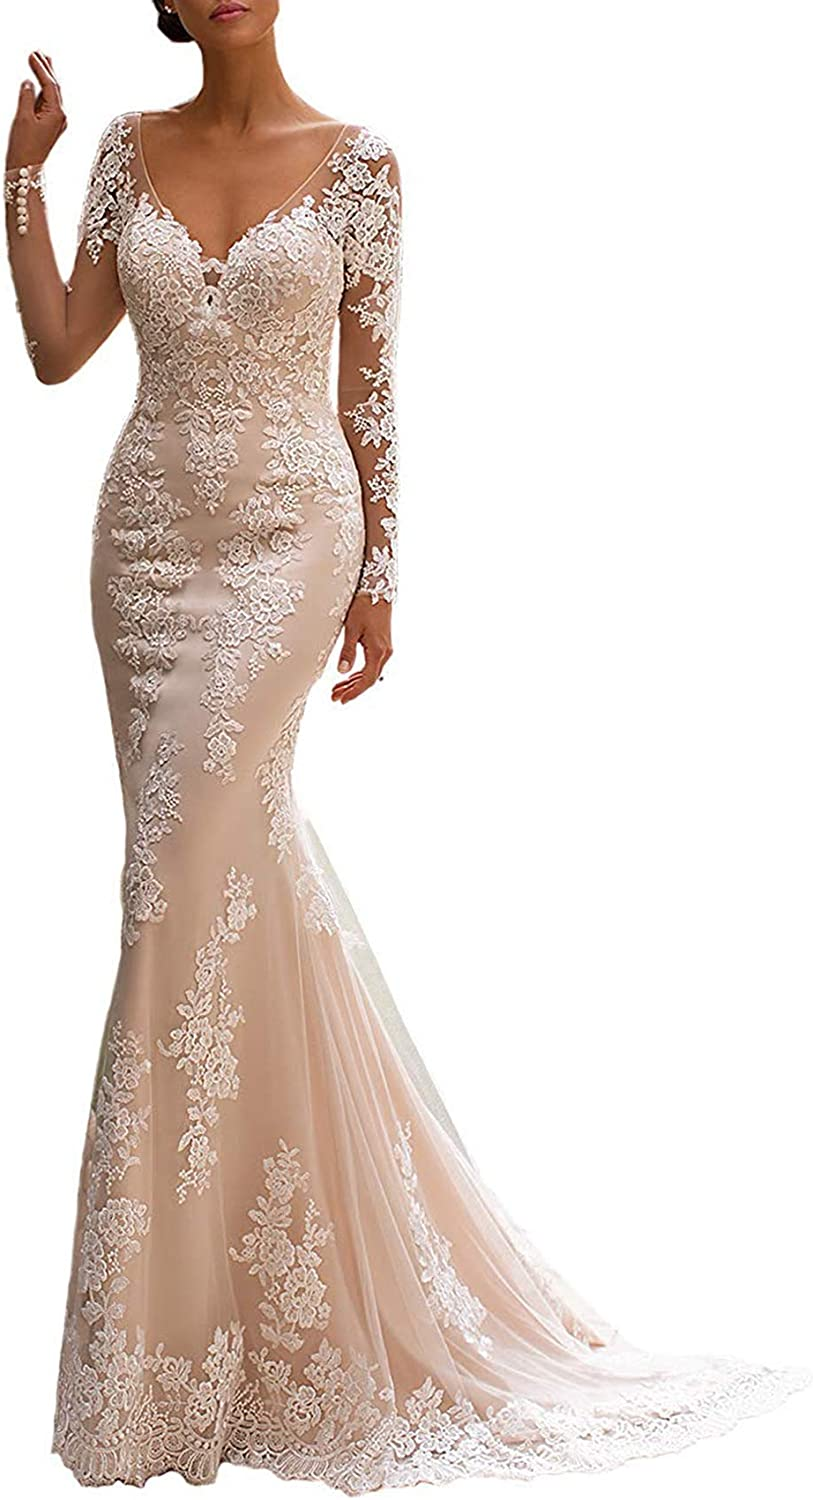 BeautBoy Women's Long Sleeves Mermaid Wedding Dress Lace Appliques V Neck Bridal Gown Plus Size W07 Ivory 20W